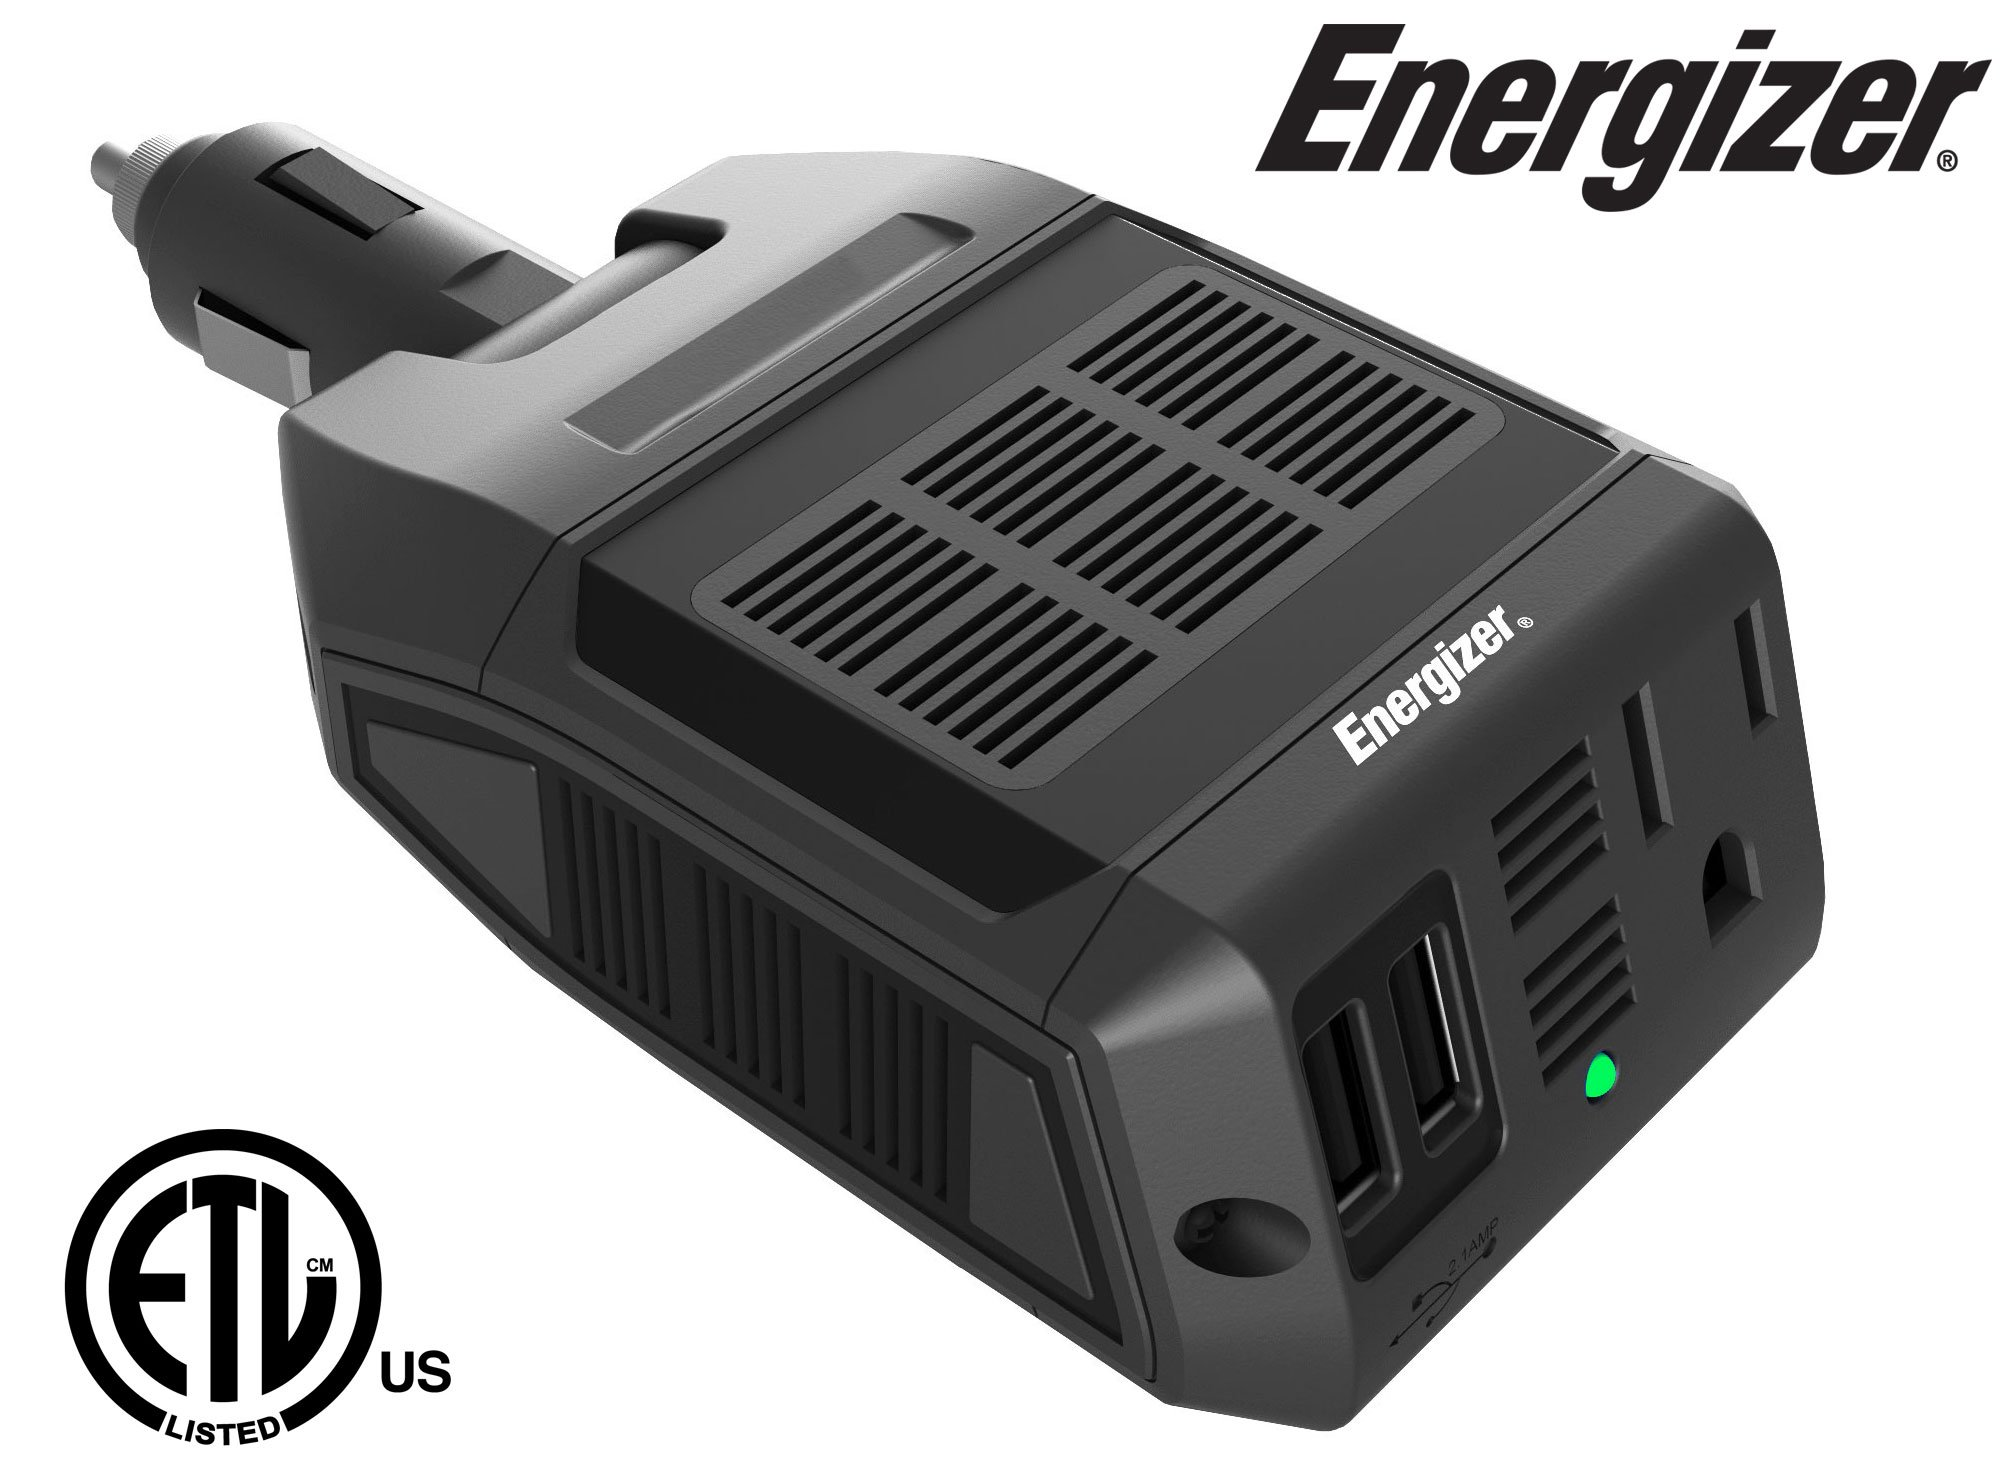 Energizer Series Inverter